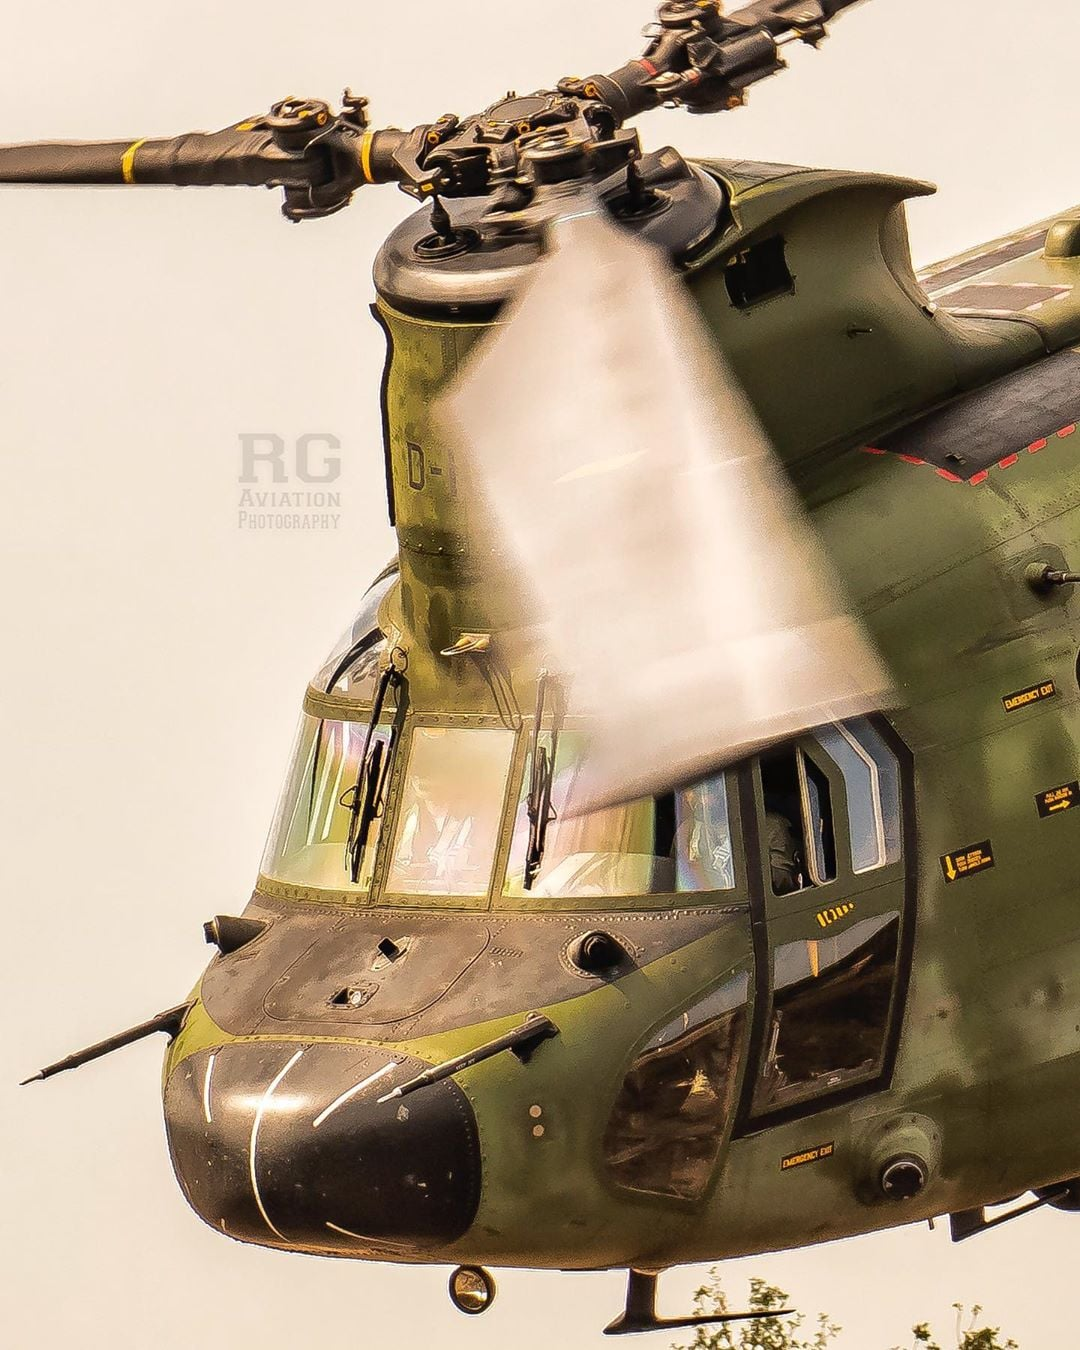 Close-up of a Royal Netherlands Air Force Boeing CH-47 Chinook. Photo submitted by Richard George (Instagram user @rg___av) using #verticalmag